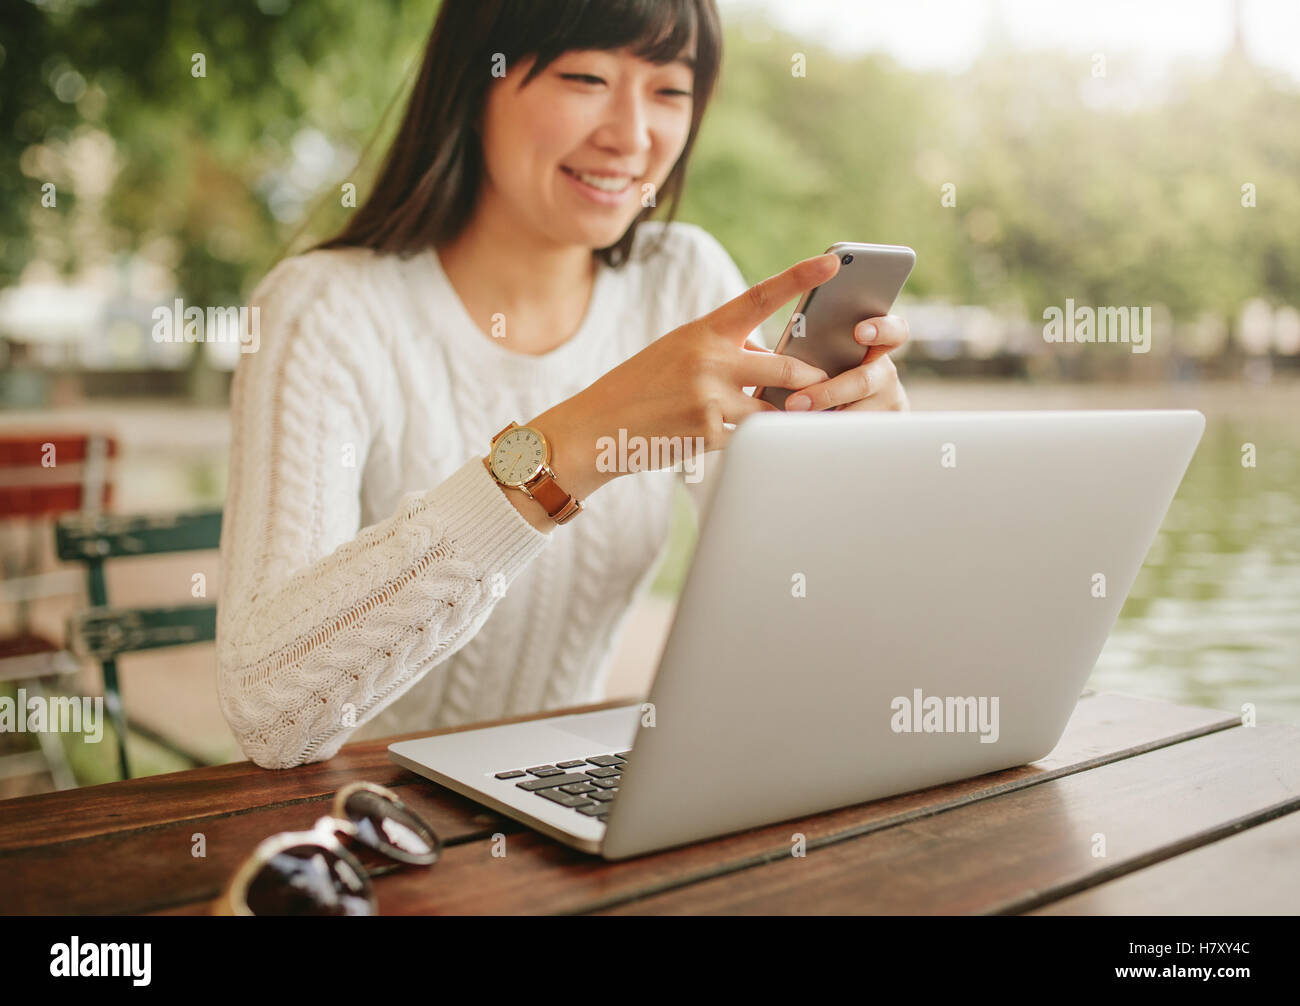 Shot of happy asian woman using smartphone at outdoor coffee shop. Female sitting at cafe table with laptop outdoors - Stock Image